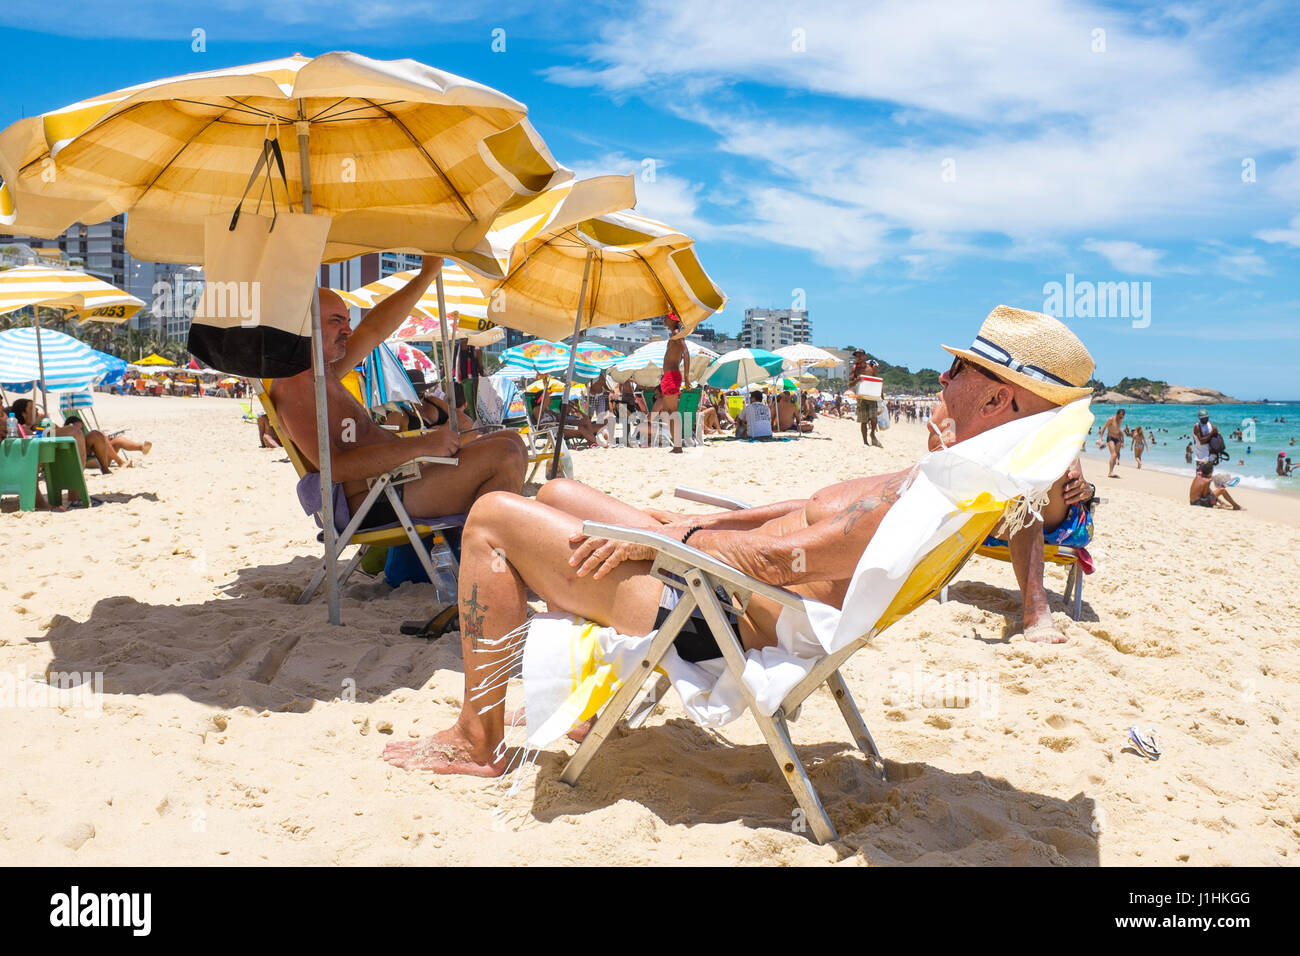 RIO DE JANEIRO - JANUARY 18, 2017: Beachgoers relax in and out of the shade of beach umbrellas on a hot summer afternoon - Stock Image